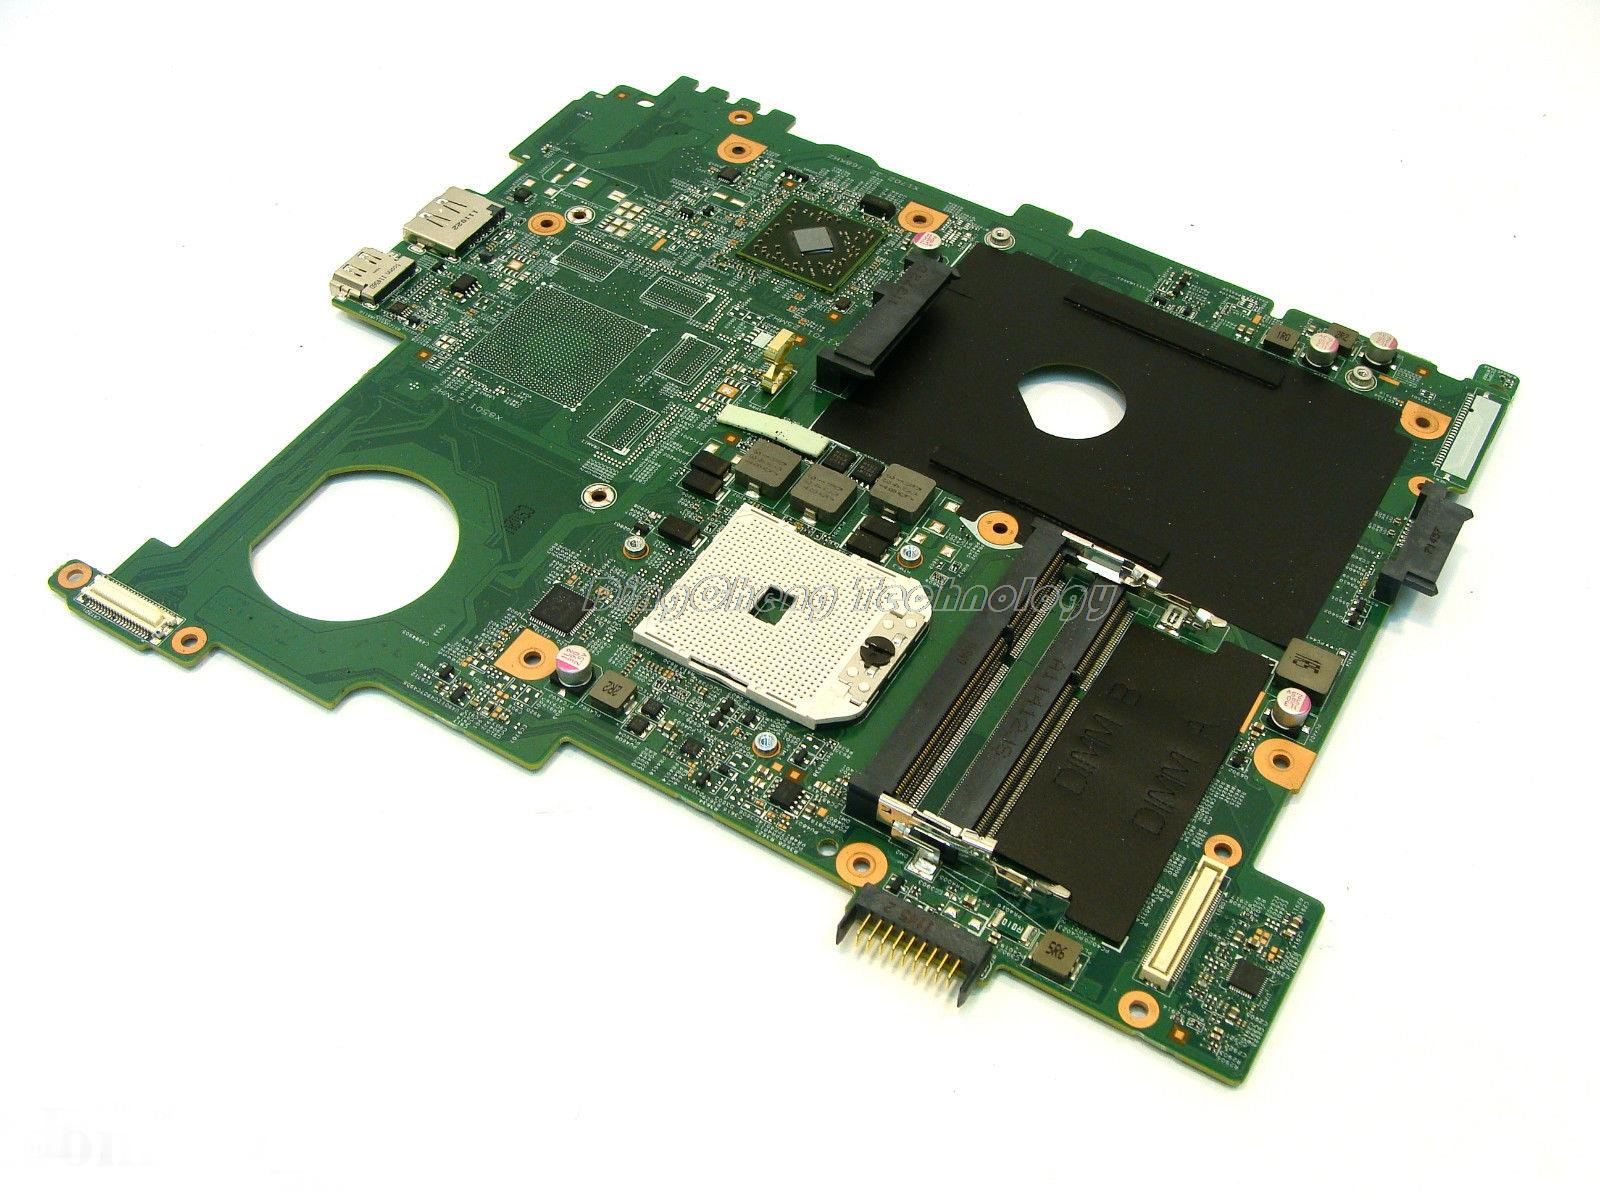 HOLYTIME laptop Motherboard for dell Inspiron 15R M511R M5110 CN 0NKG03 NKG03 48.4IE04.04.021 10246 2 integrated graphics card